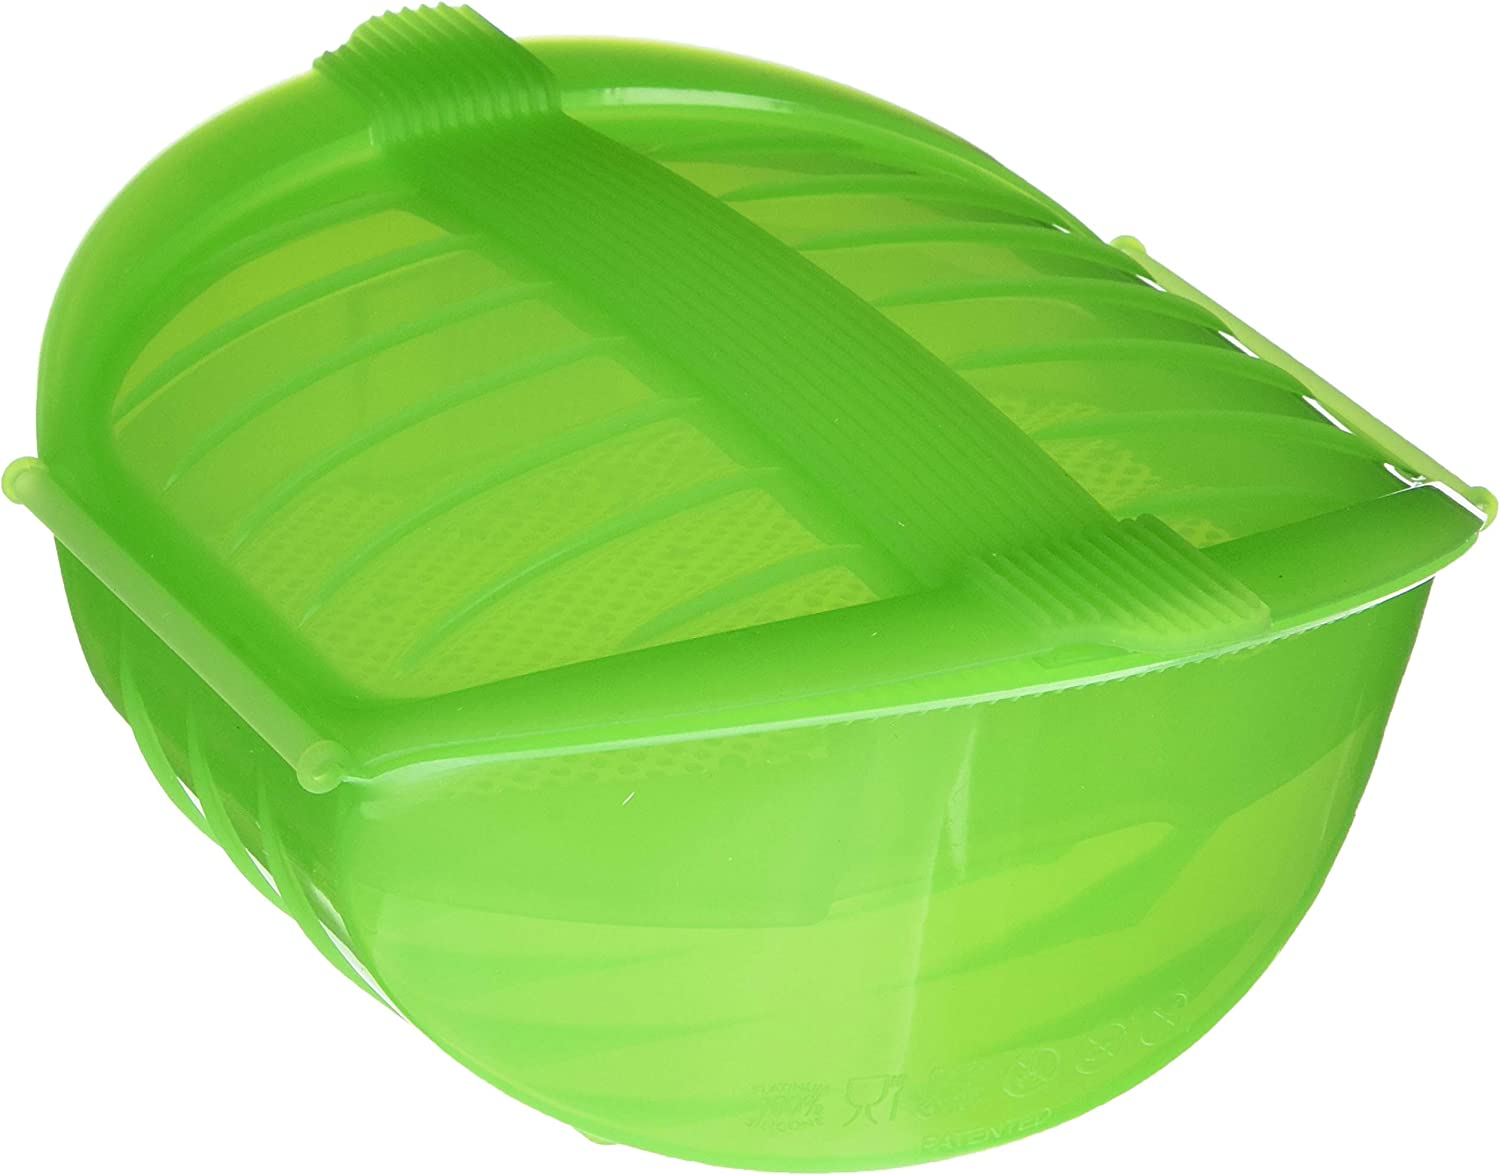 Lekue 1-2 Person Deep Steam Case with Tray, Green